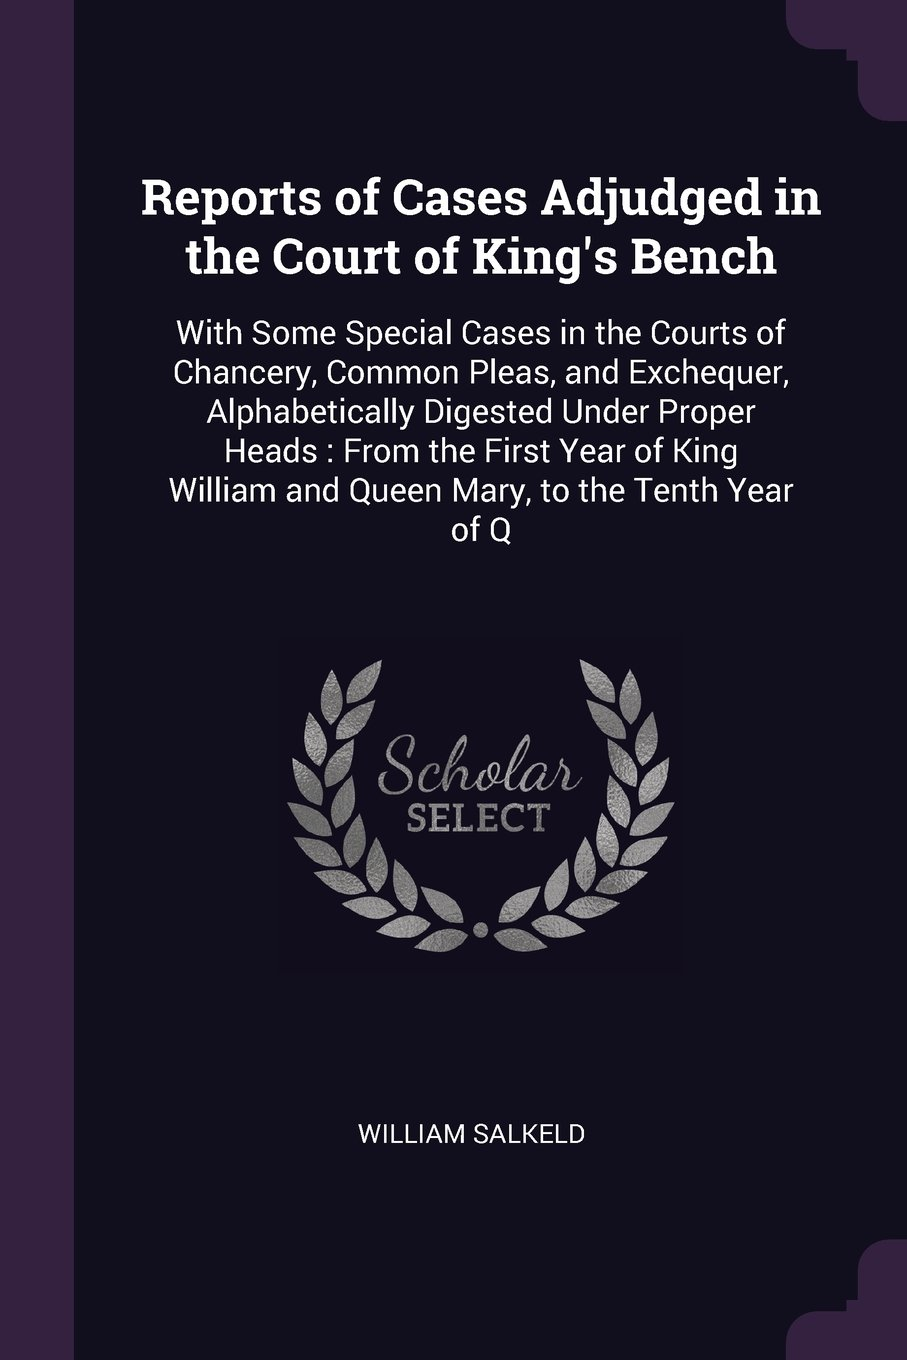 Read Online Reports of Cases Adjudged in the Court of King's Bench: With Some Special Cases in the Courts of Chancery, Common Pleas, and Exchequer, Alphabetically ... and Queen Mary, to the Tenth Year of Q ebook